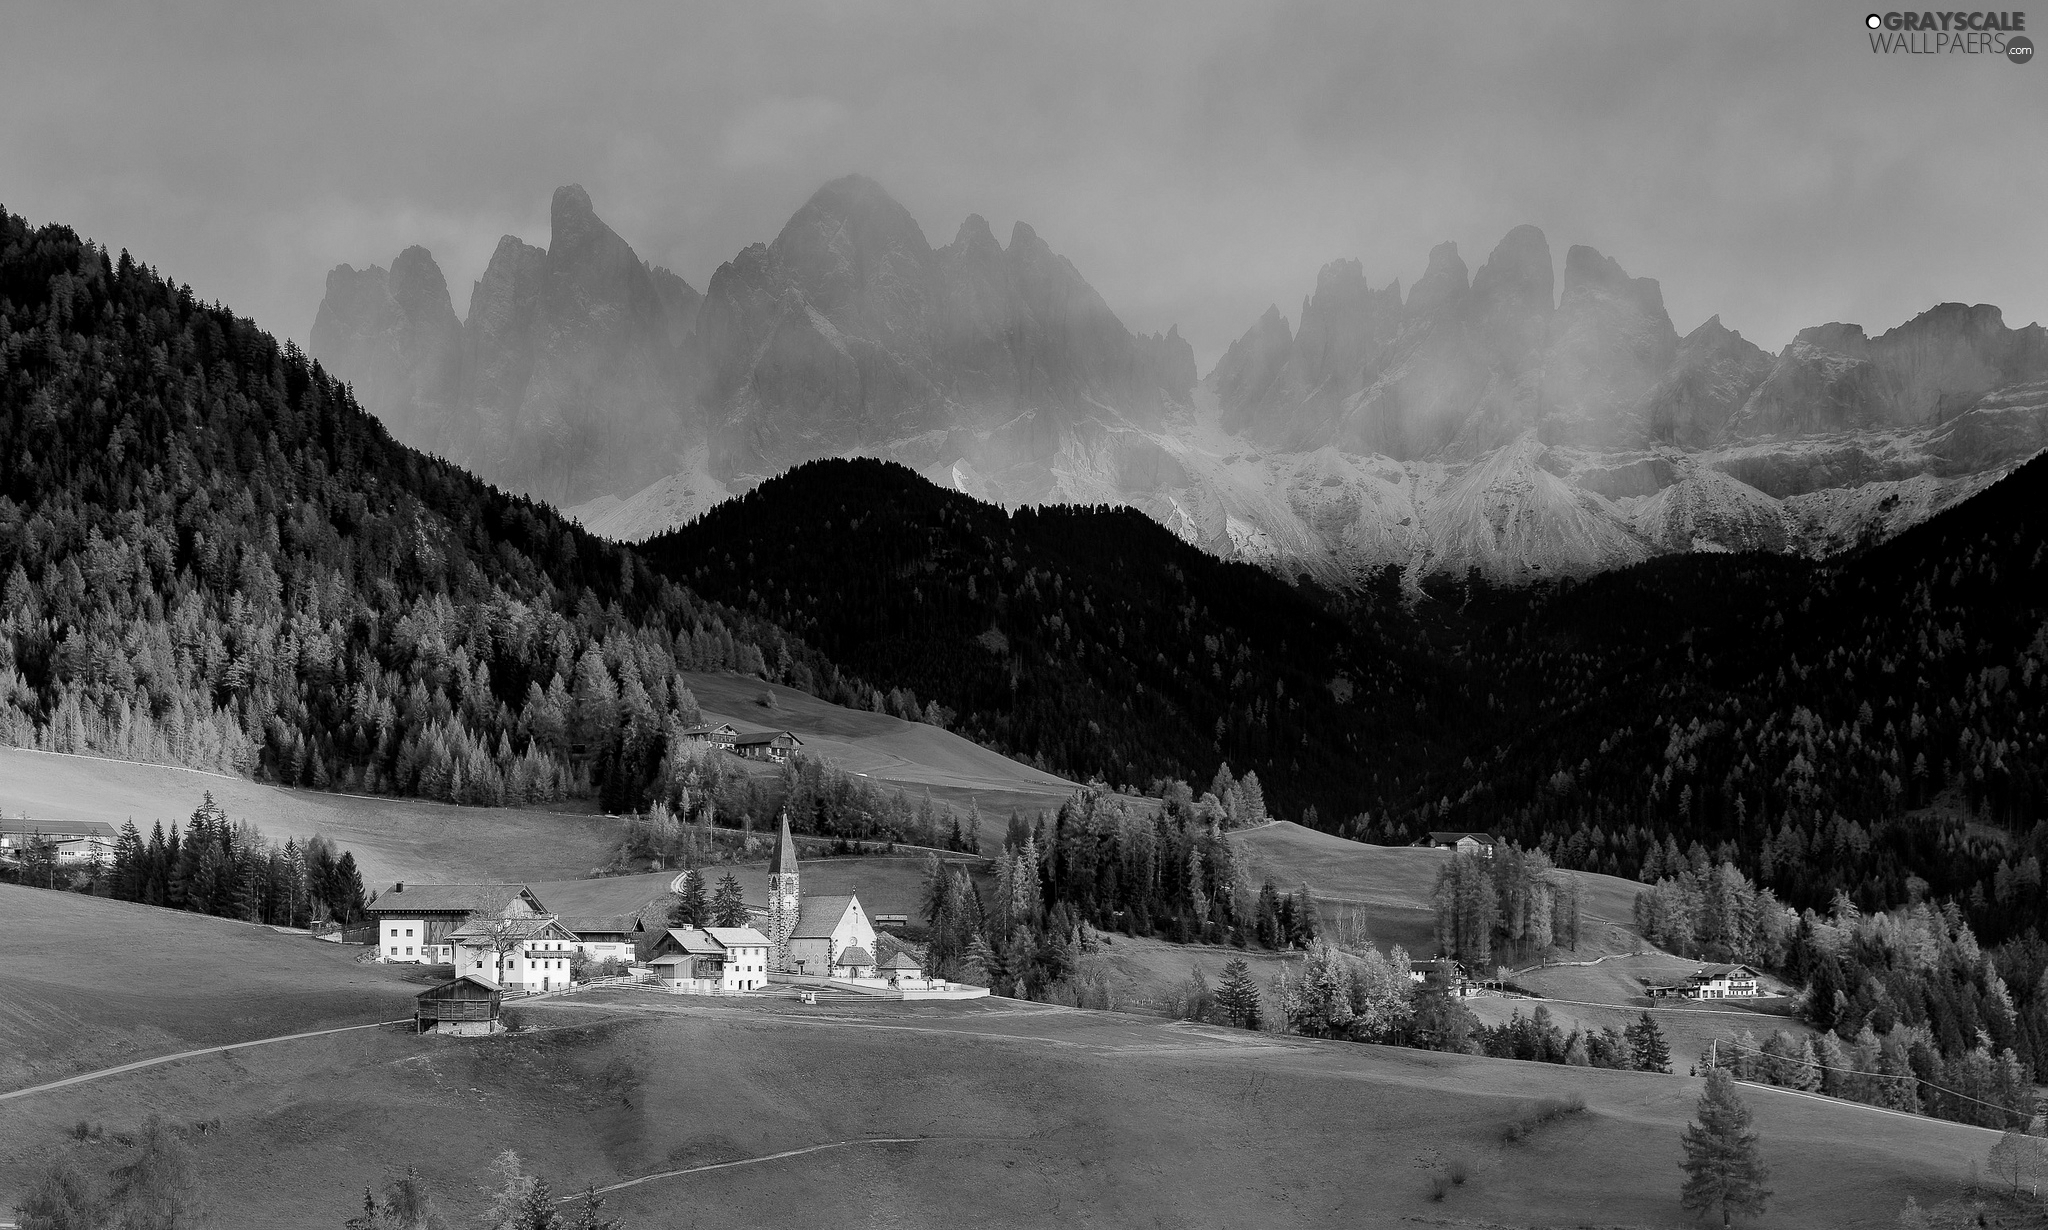 Houses, viewes, Church, Dolomites, Mountains, Fog, trees, Italy, clouds, woods, Val di Funes Valley, Village of Santa Maddalena